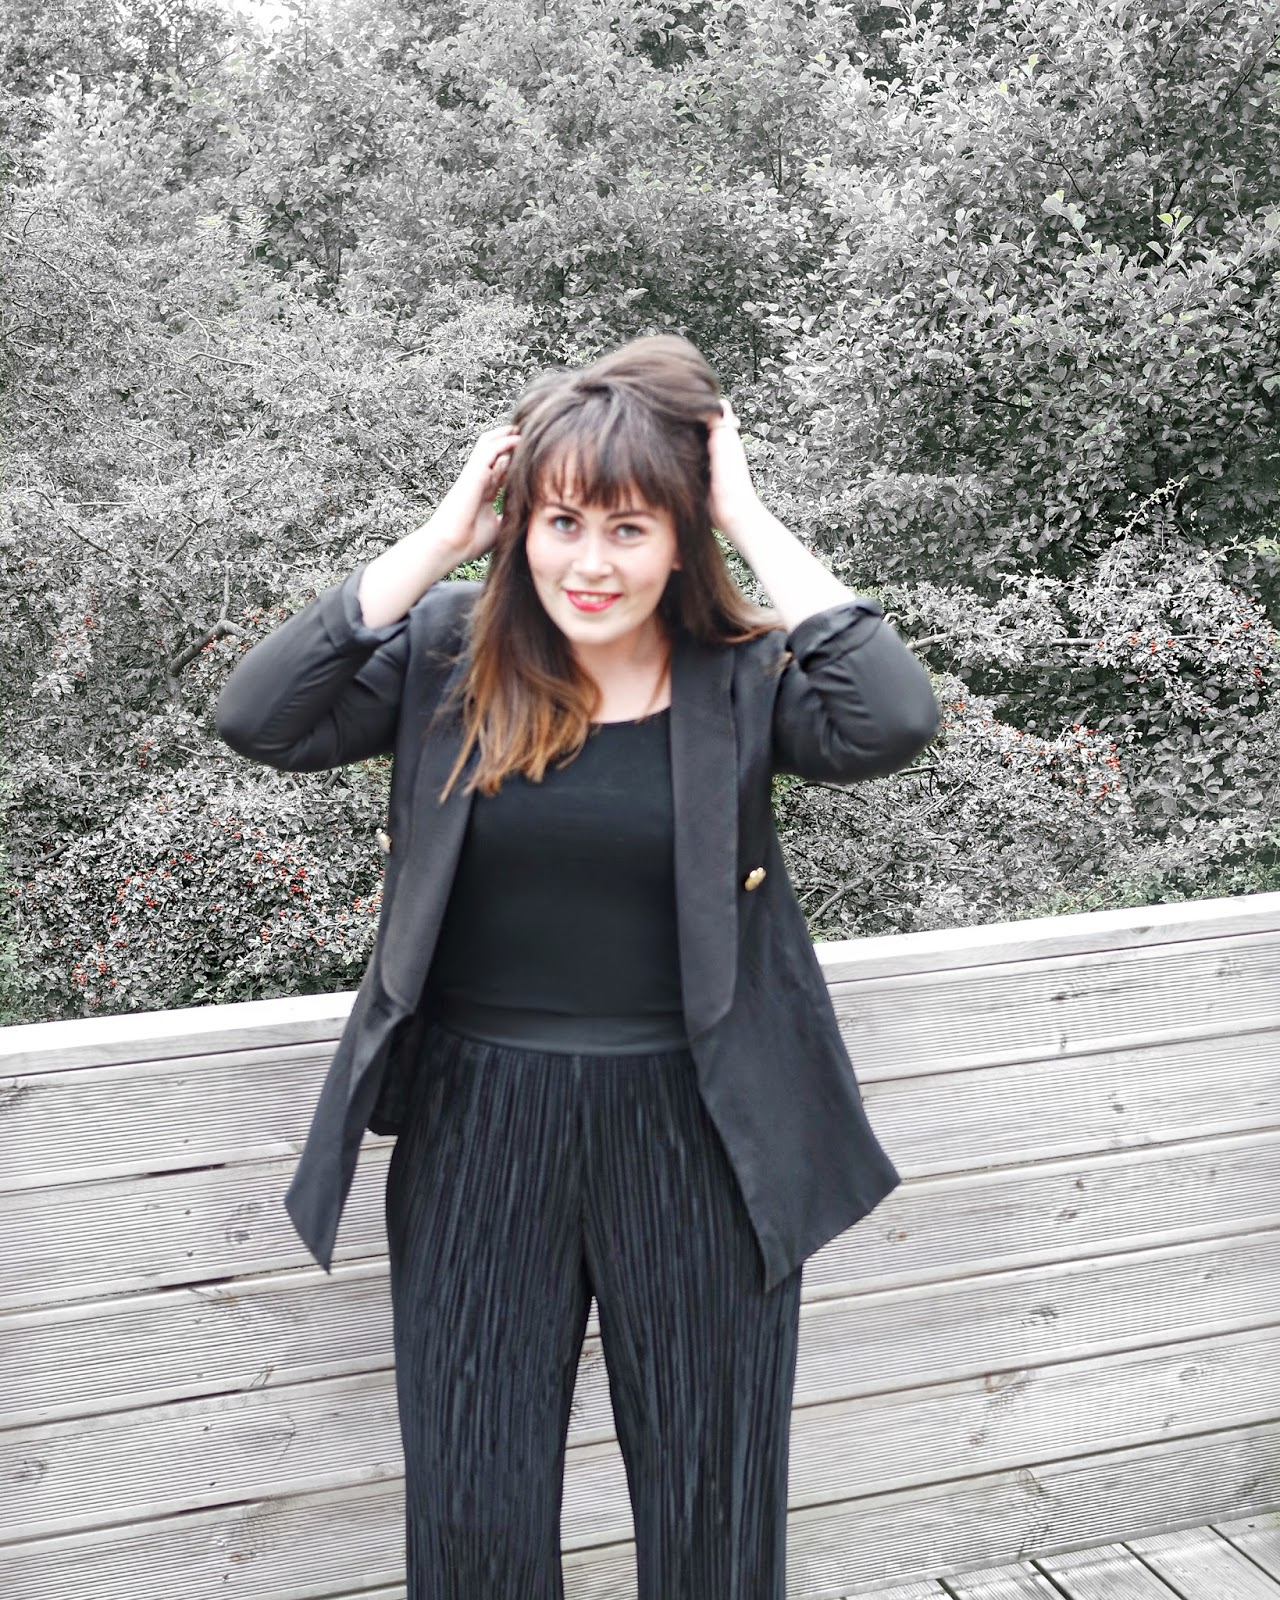 check out a blog post on body confidence & primark styling